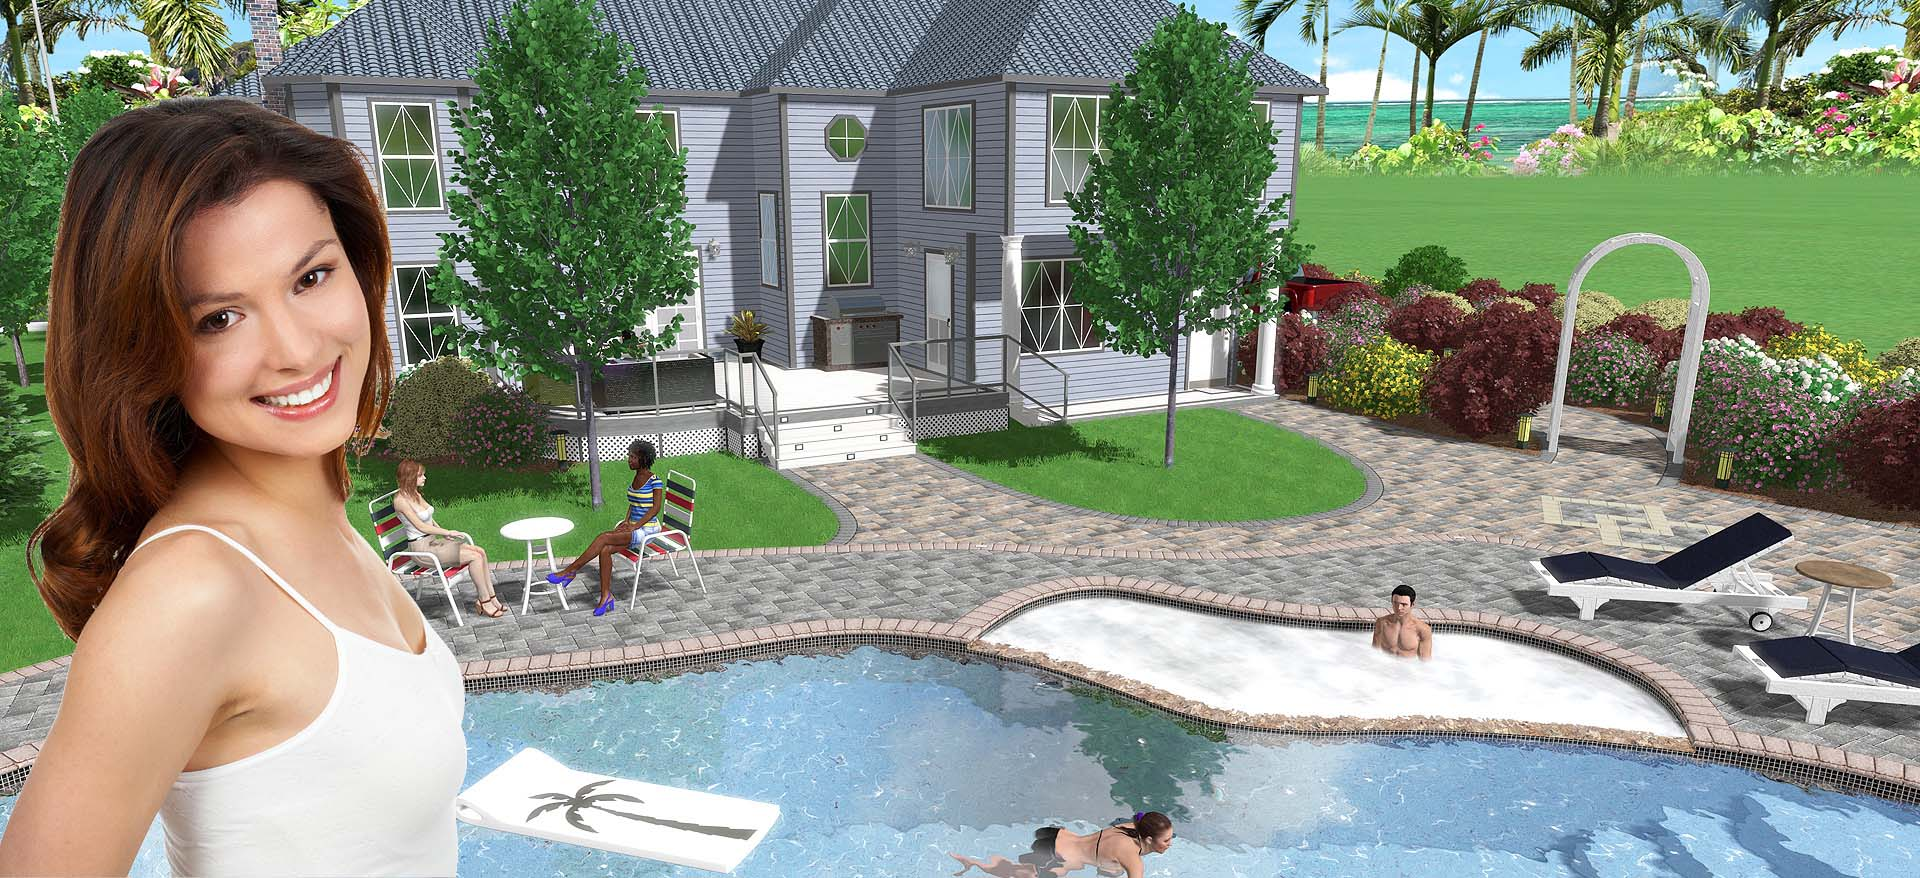 Landscape design software 3d landscaping software free for 3d pool design online free